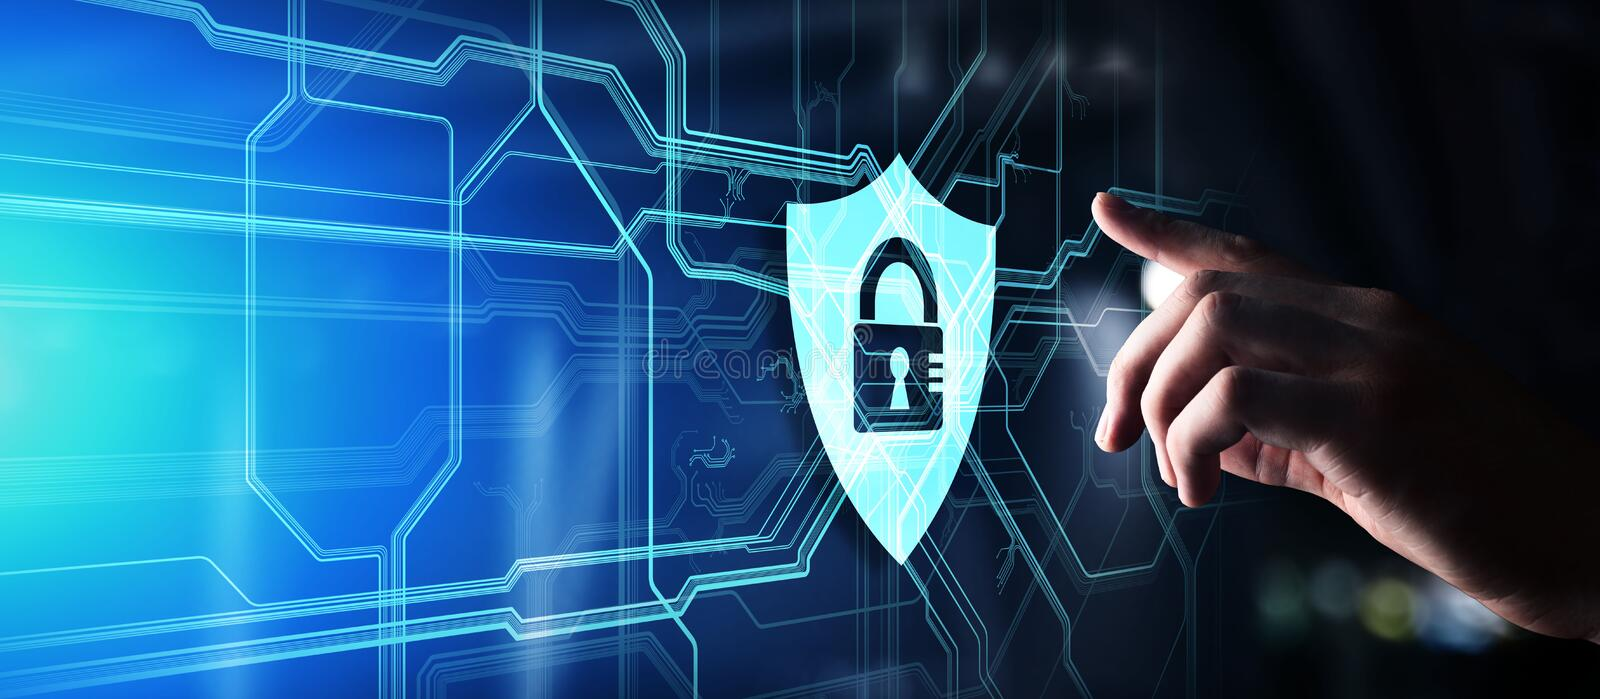 Shield cyber security concept on virtual screen. Data protection. Information privacy. royalty free stock photography